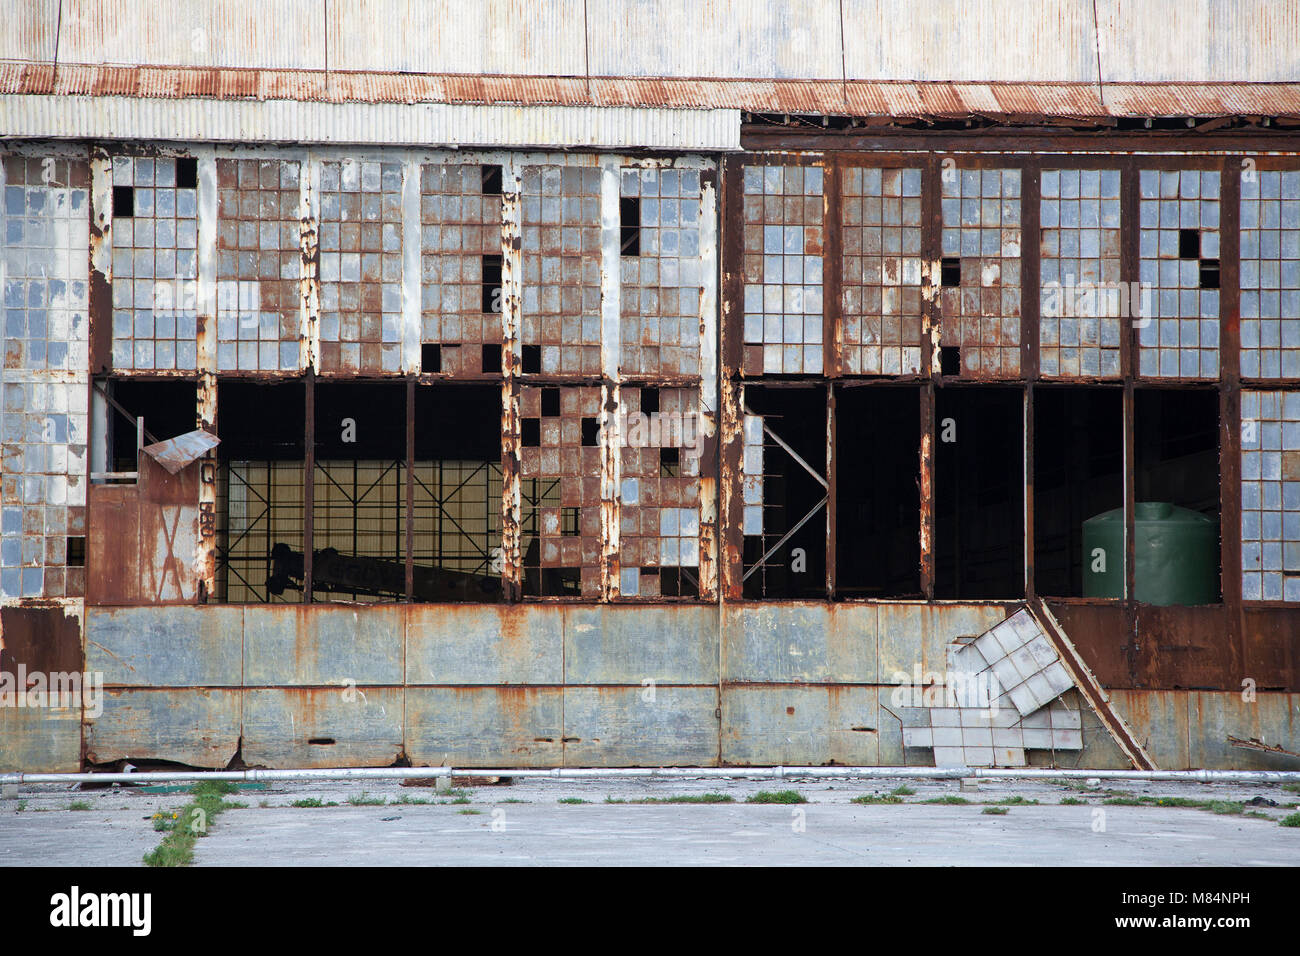 One side of the Midway seaplane hangar shelled in WWII on Dec 7, 1941 and set on fire by Japanese air attack Jun Stock Photo